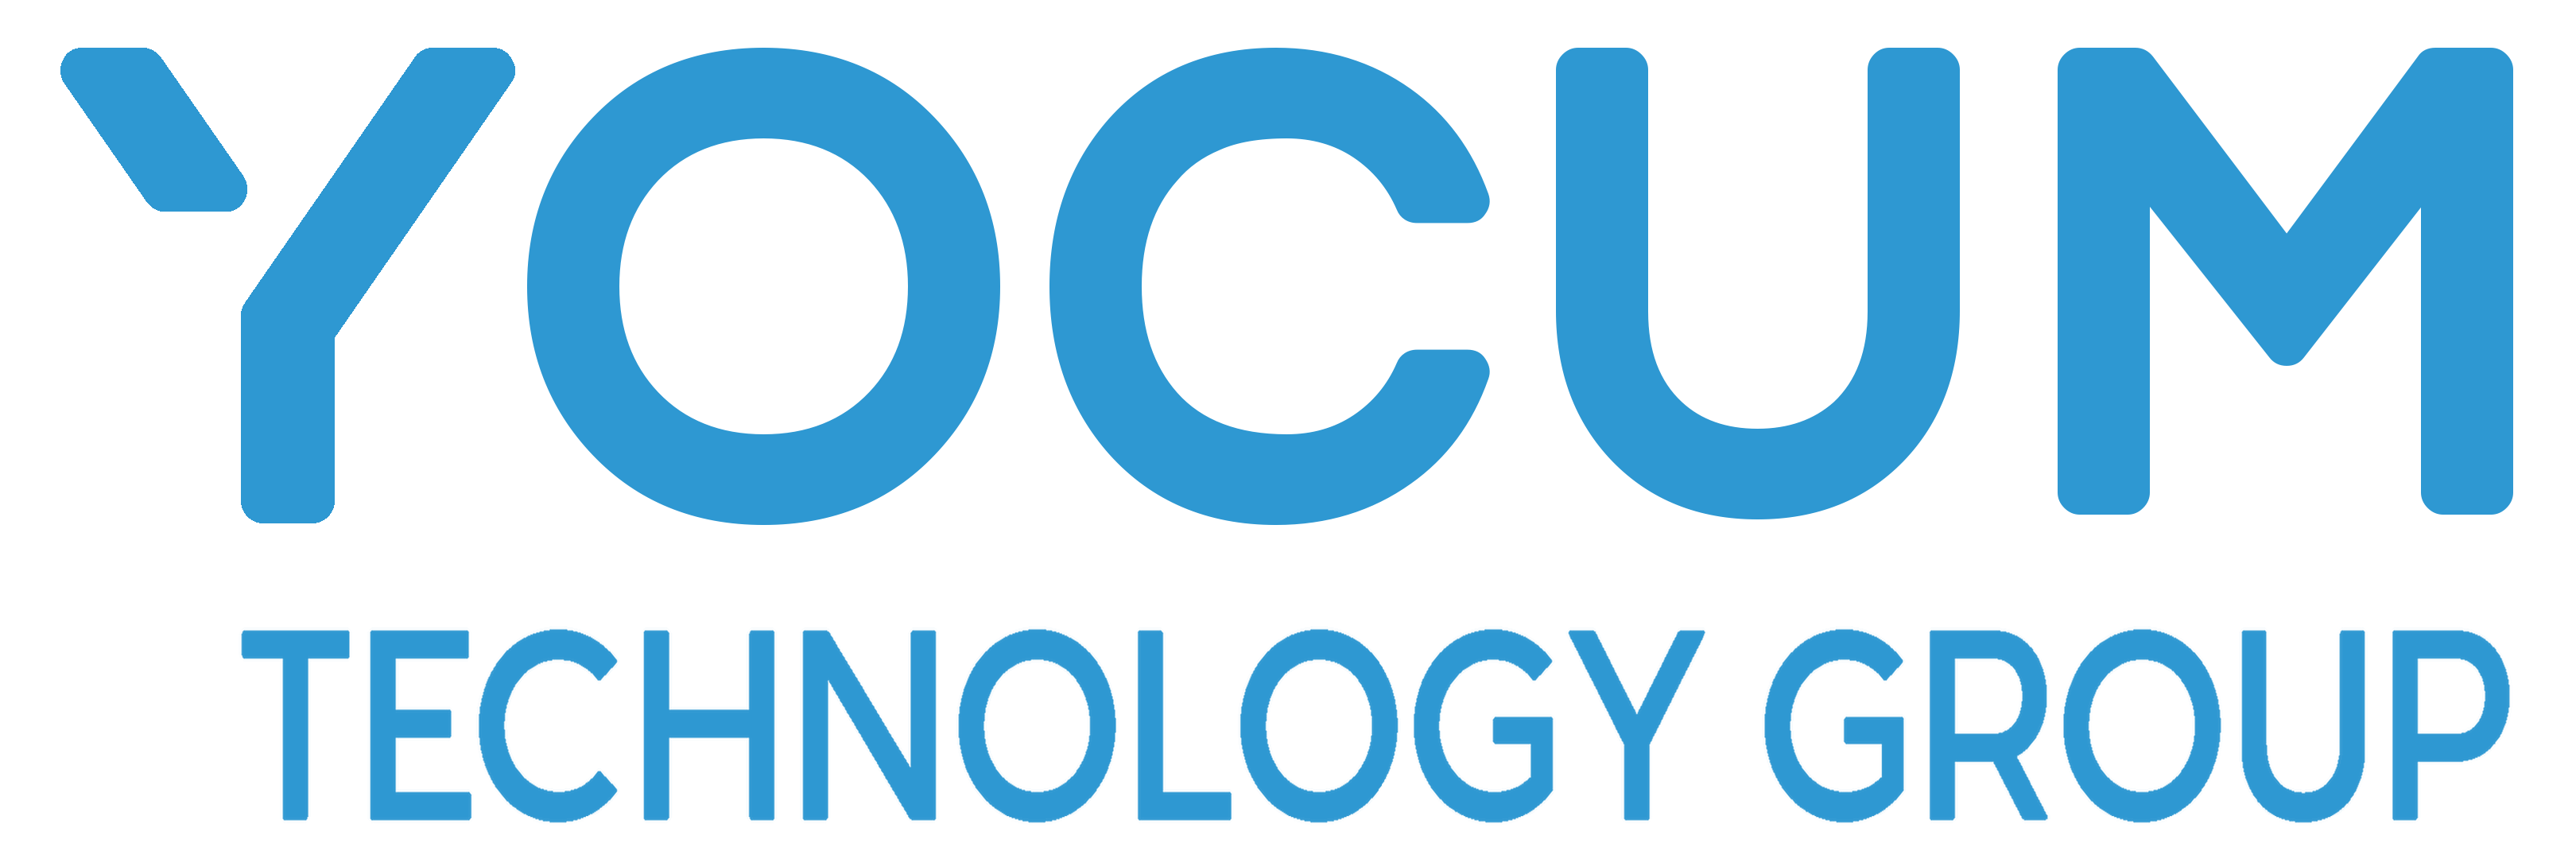 Yocum Technology Group